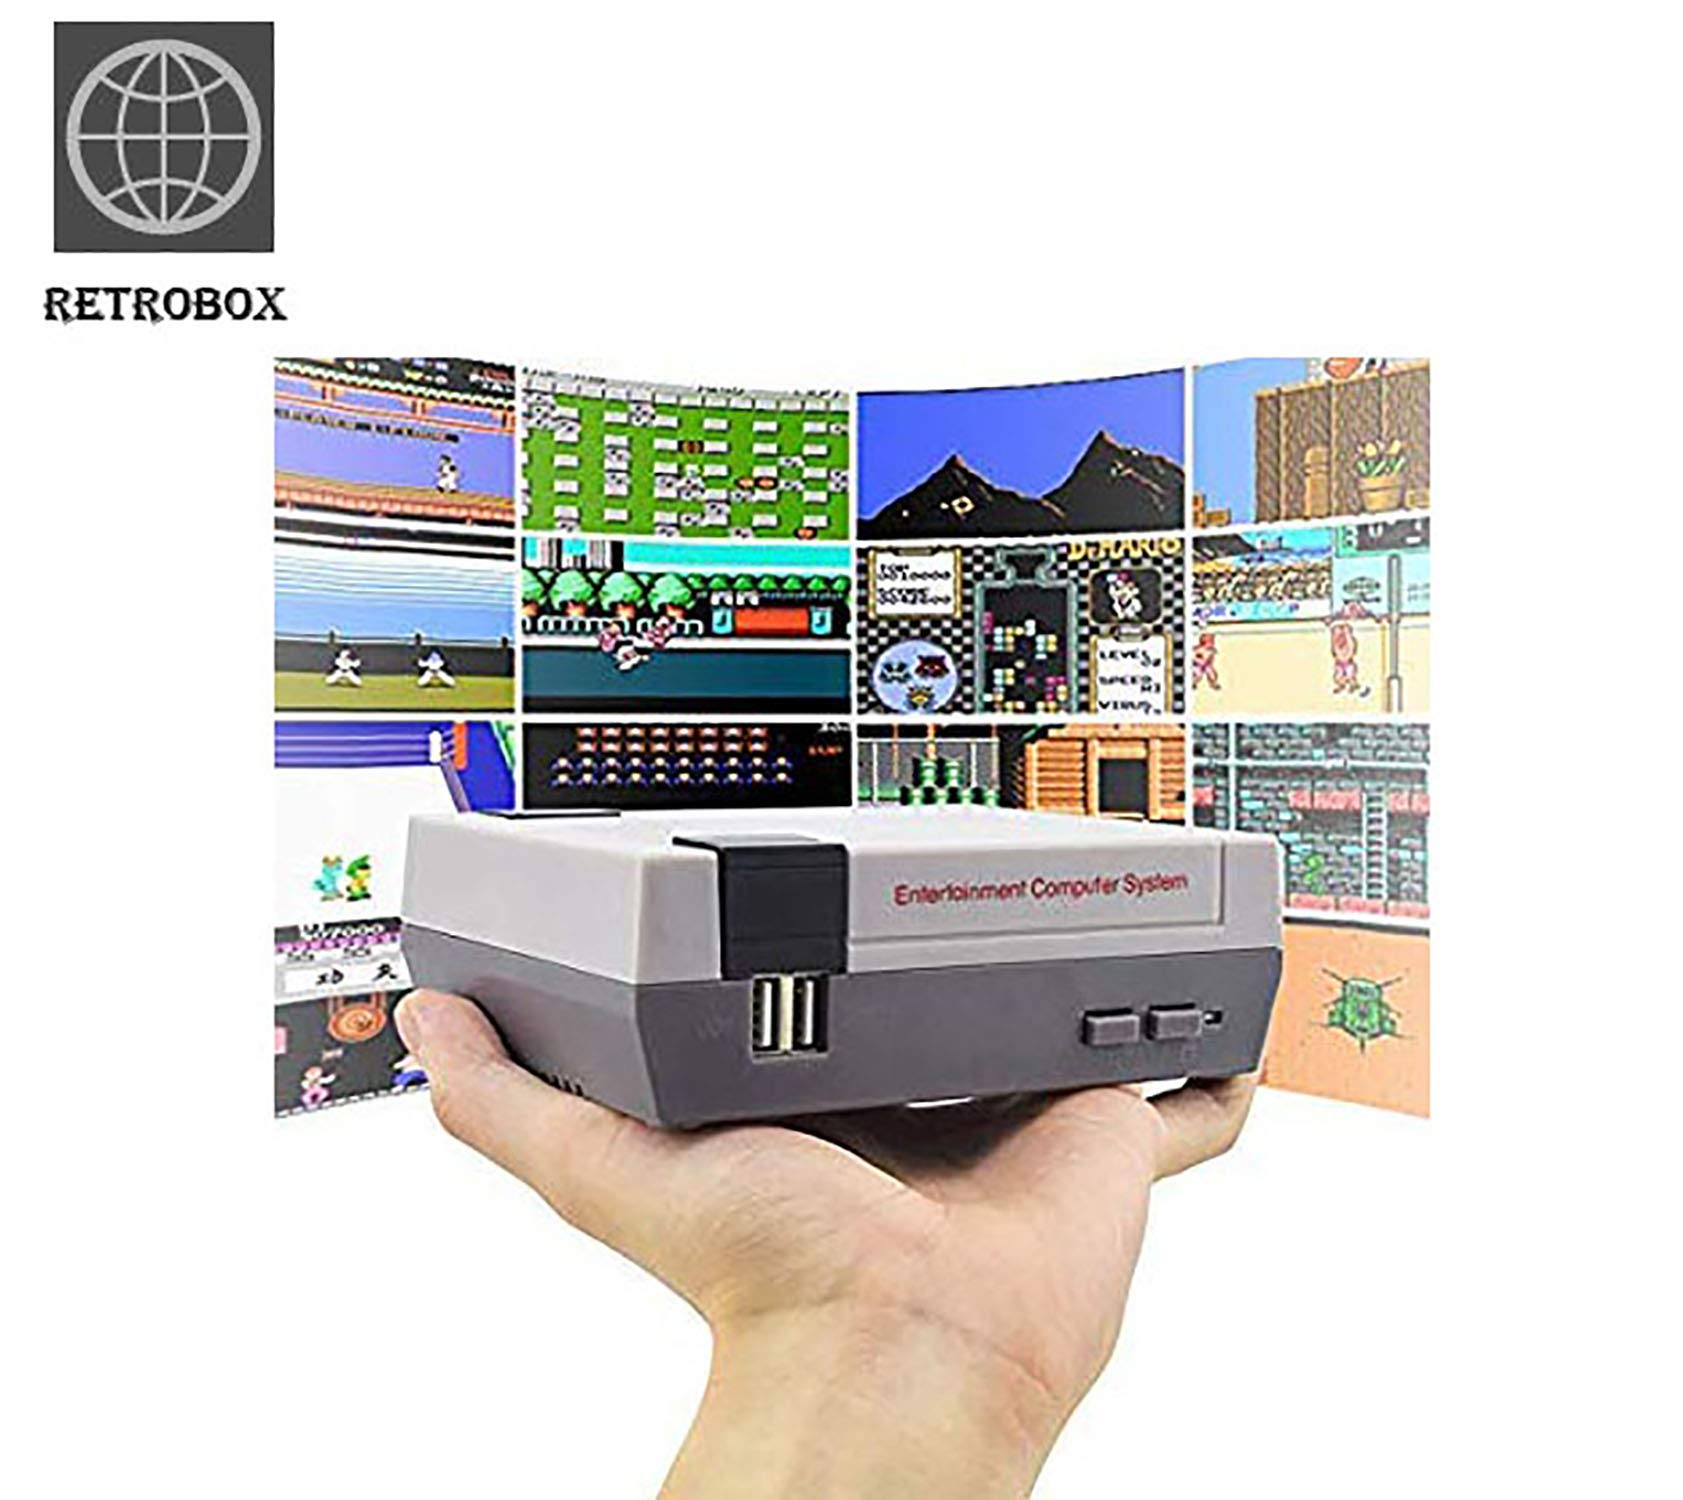 Retro Classic Game Console Retro Childhood Game Classic Game Consoles Built-in 620 Childhood Classic Game Dual Control 8-Bit Console Handheld Game Player Console for Classic Games Family TV Video by RetroBox (Image #2)